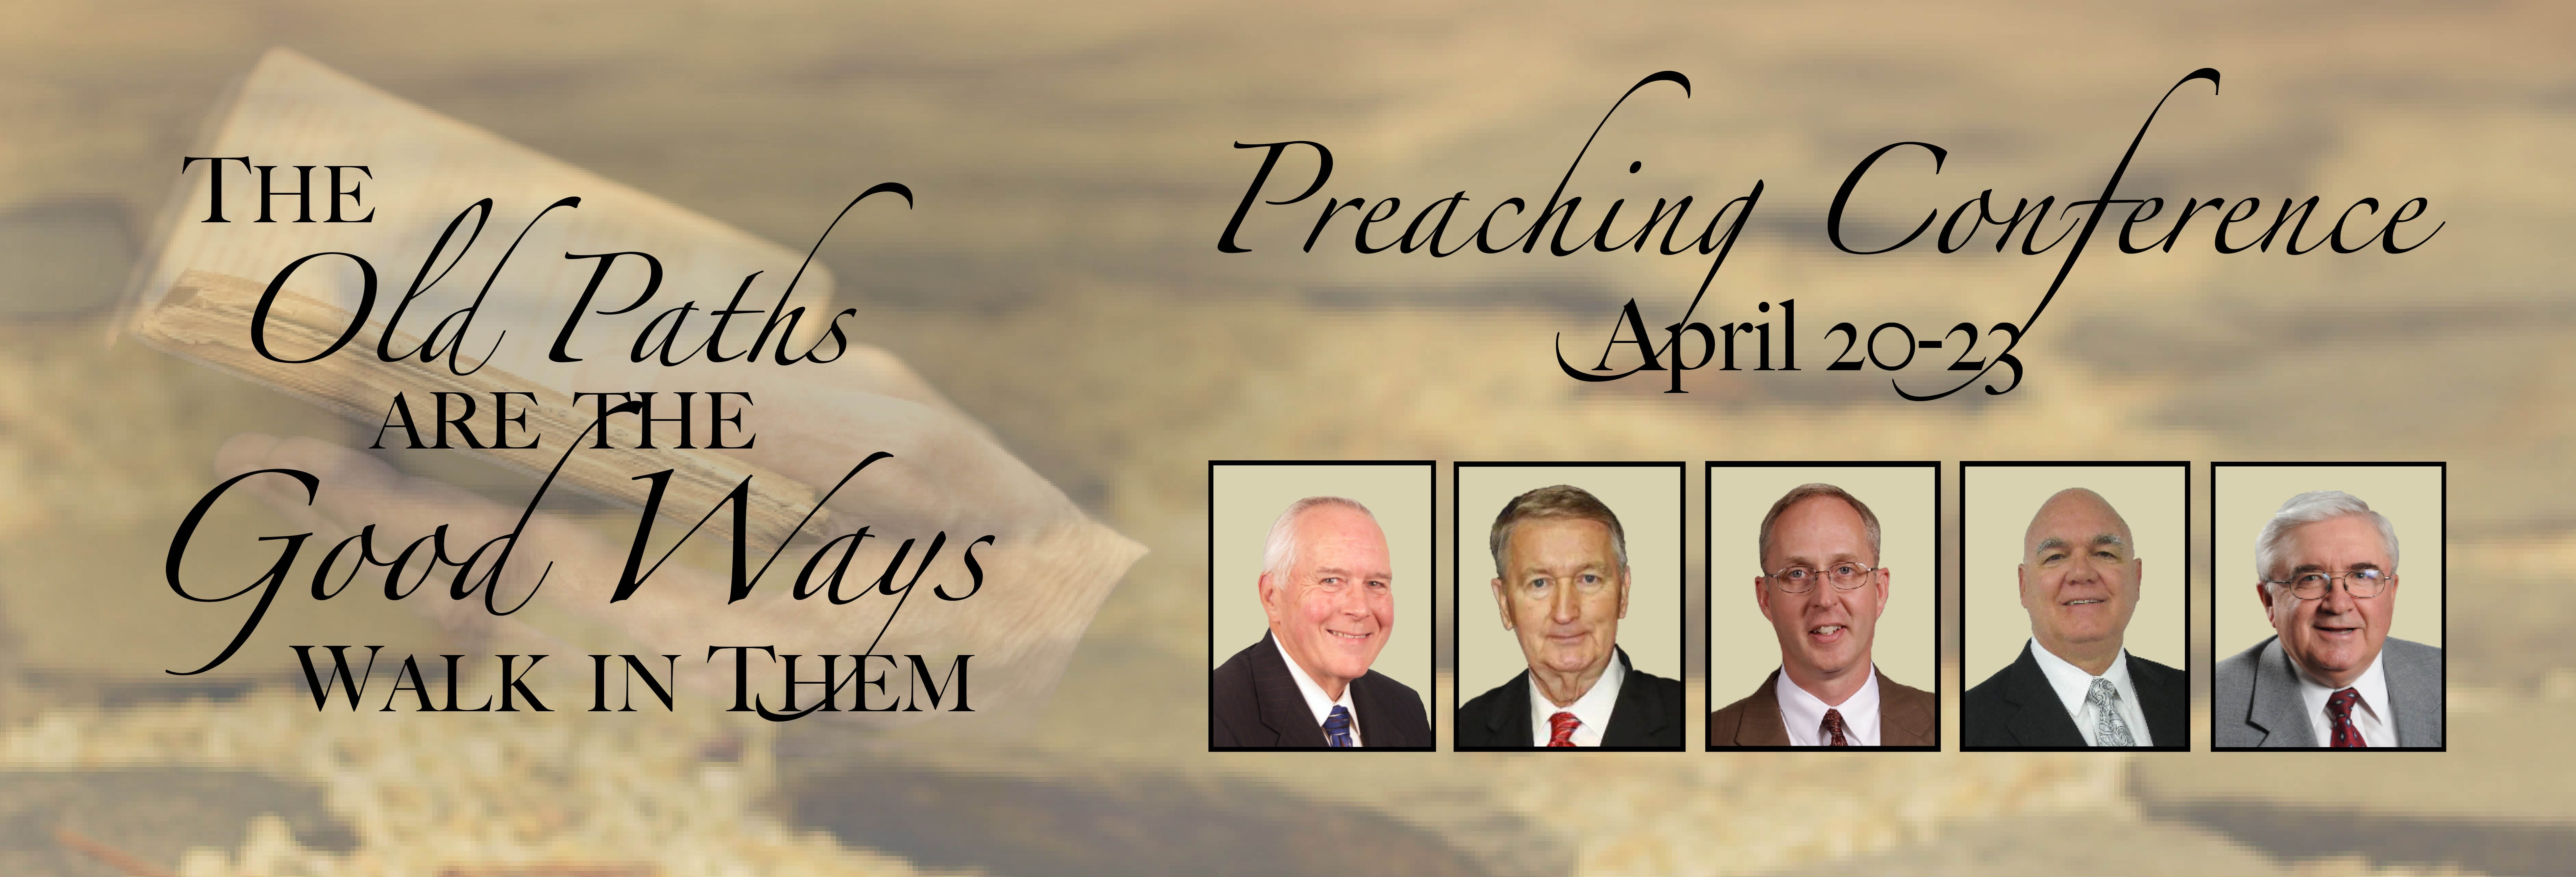 Preaching Conference 2015